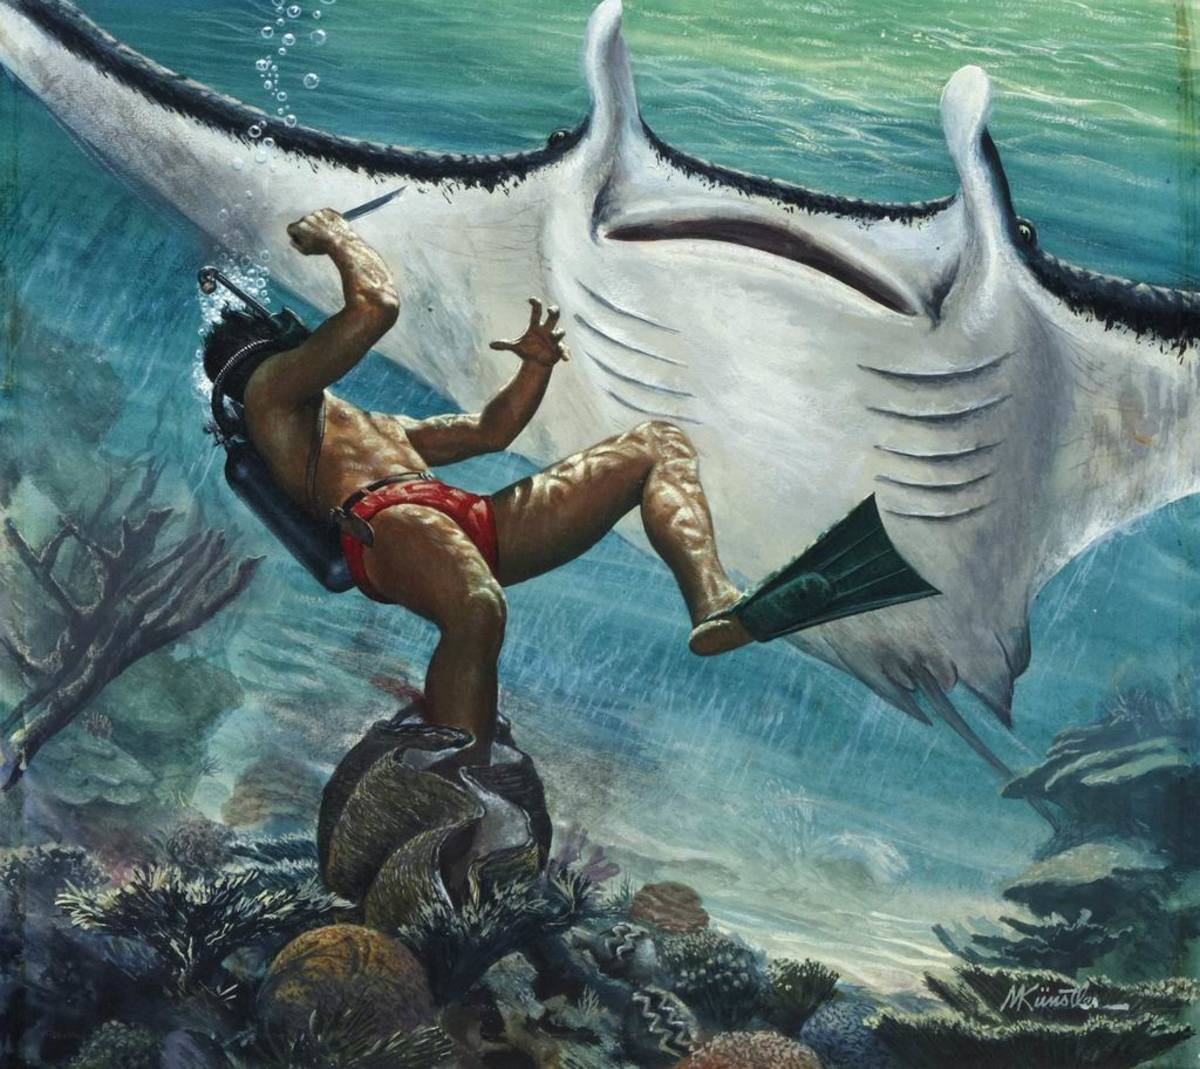 The Giant Manta-Ray, February 1956. Art by Mort Kunstler